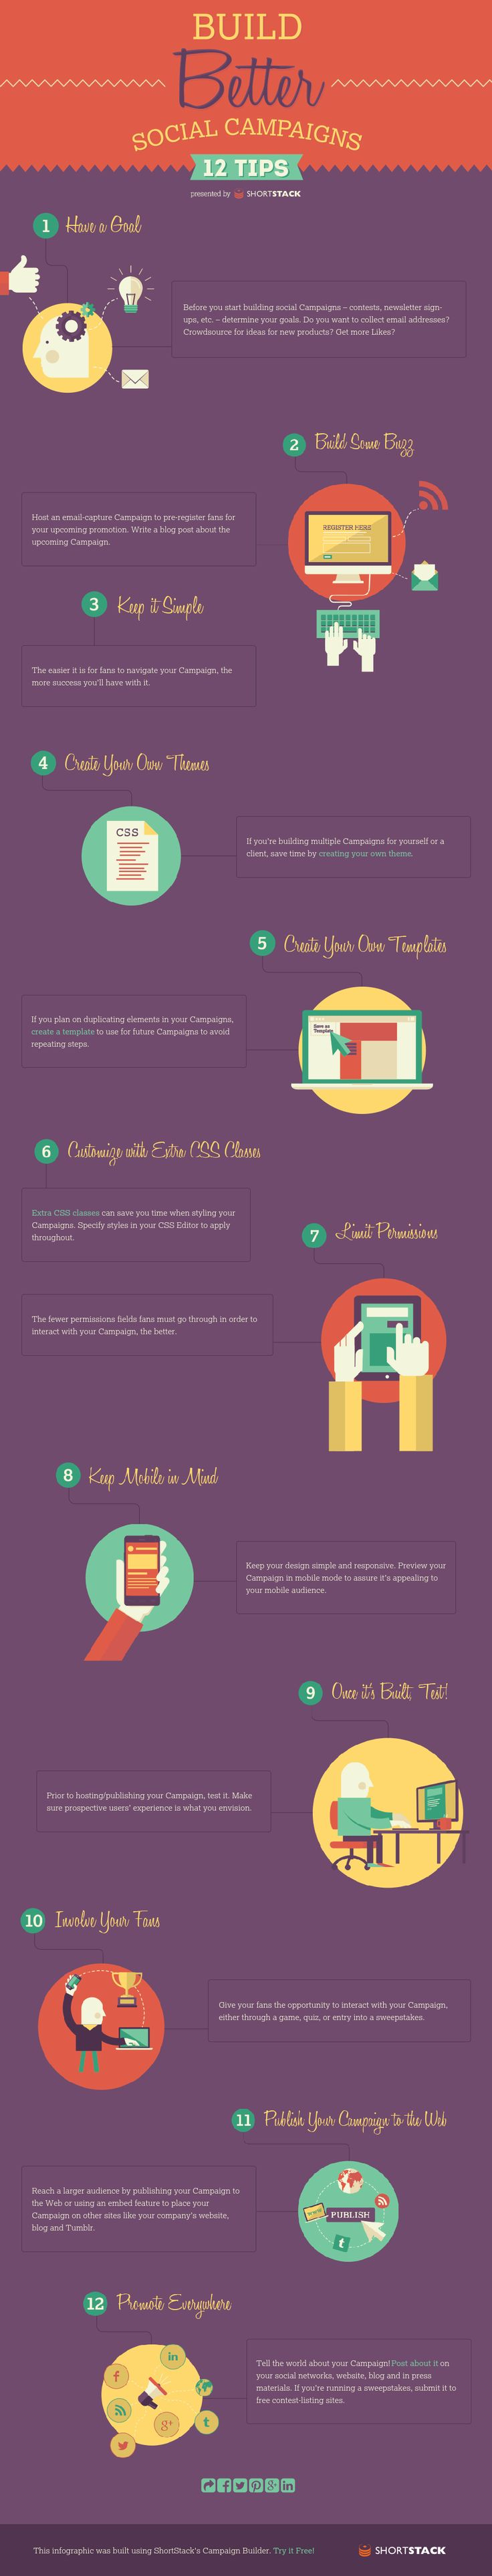 12 Best Practices For Building Better Social Media Marketing Campaigns #infographic #SocialMedia #marketing Visit our website at www.firethorne.org! #creativeadvertising #advertisement #creative #ads #graphic #design #marketing #contentmarketing #content